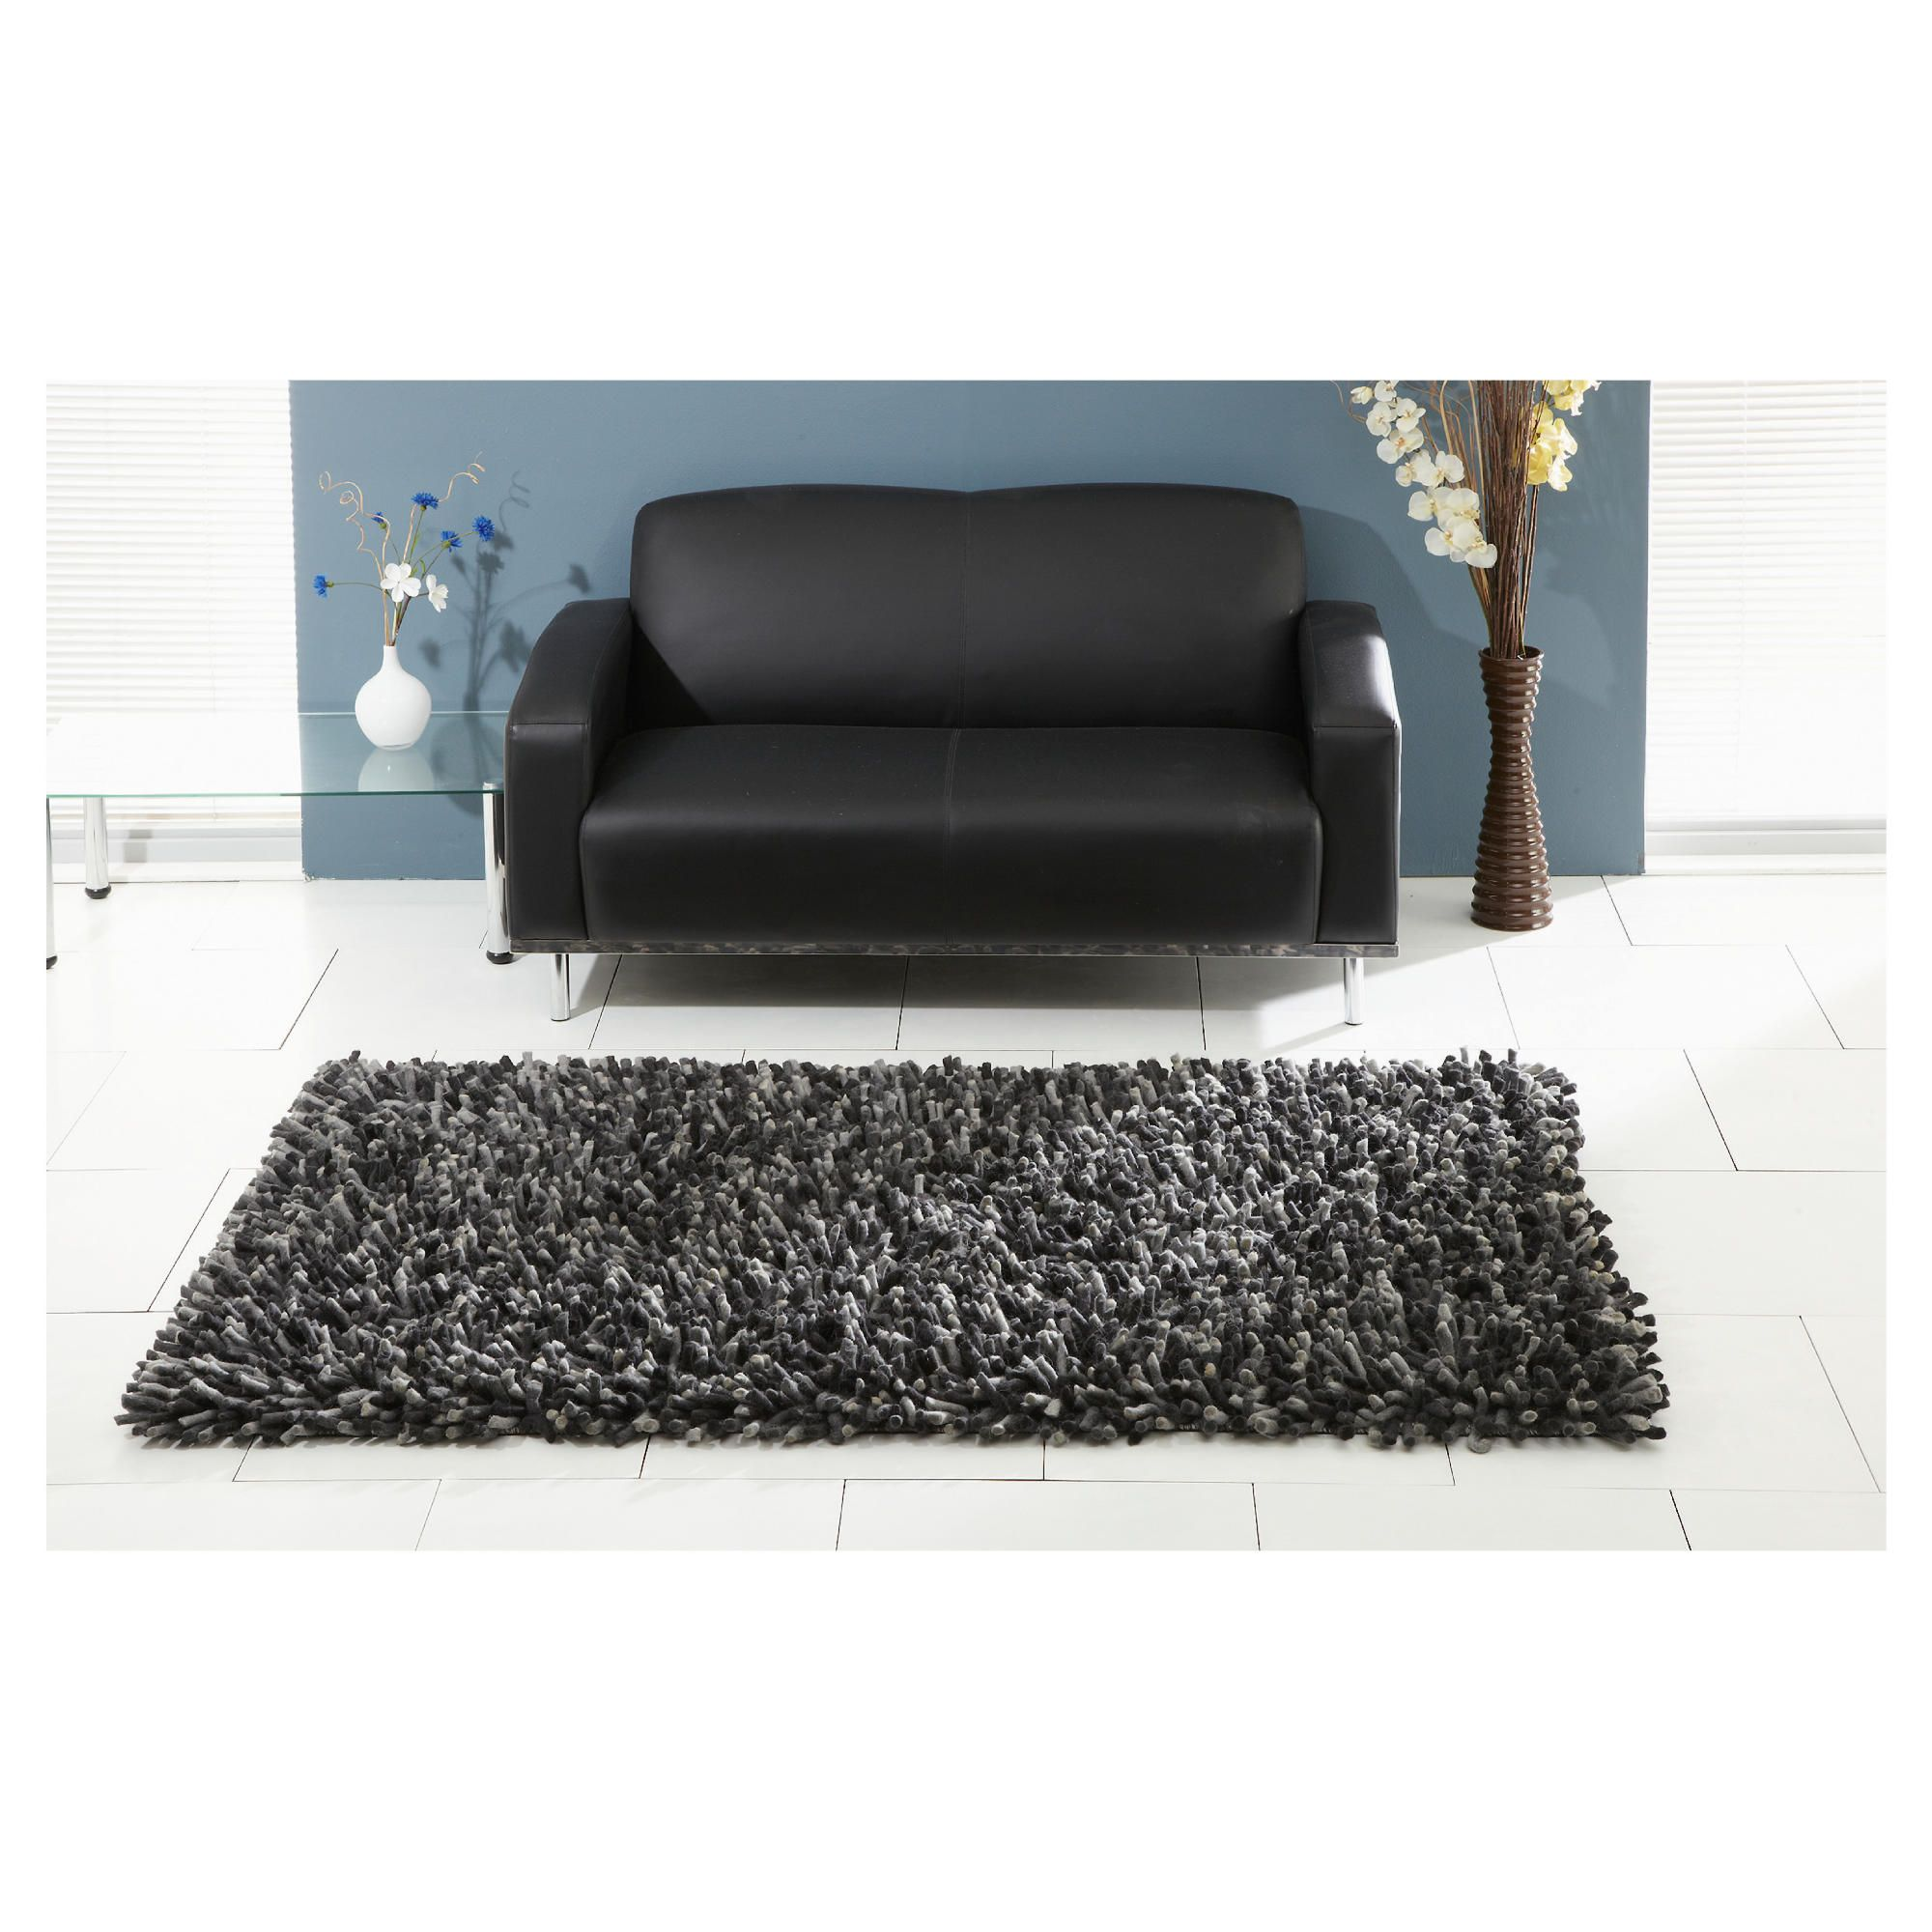 The Ultimate Rug co. Rocky Rug Grey 160x230cm at Tesco Direct